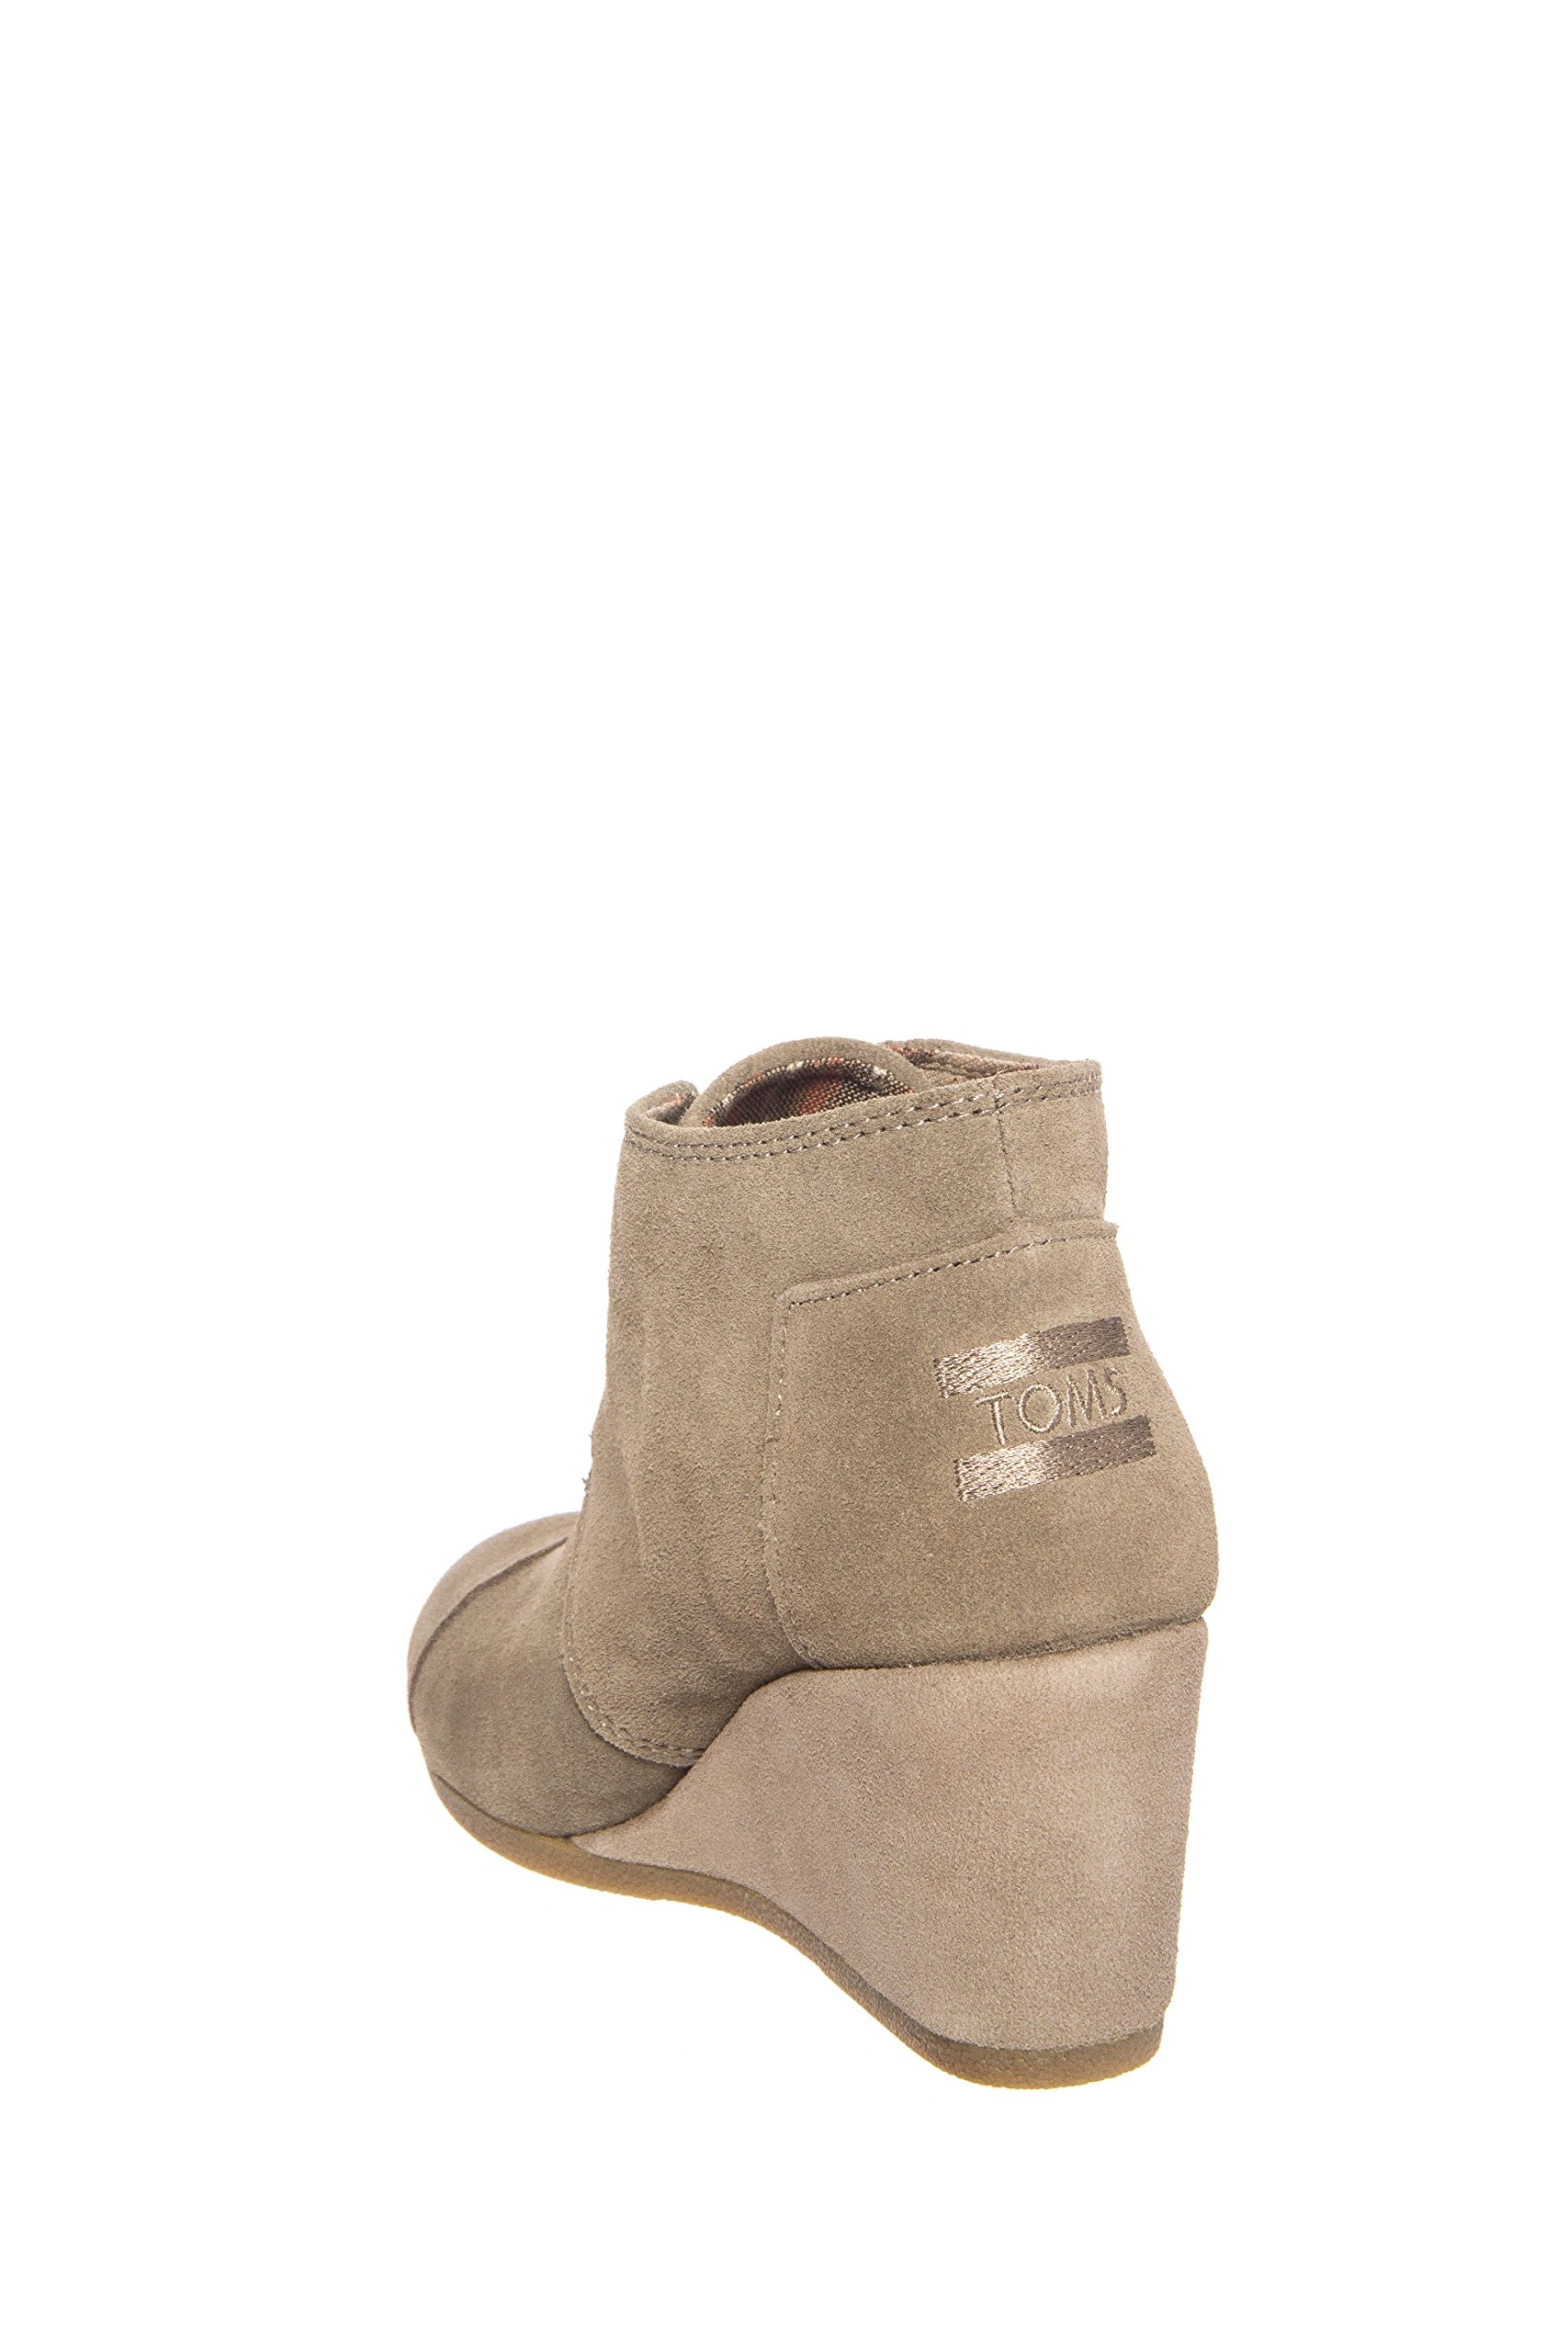 a5397e0982e0d Toms Womens Desert Wedge Boot Taupe Suede Size 10